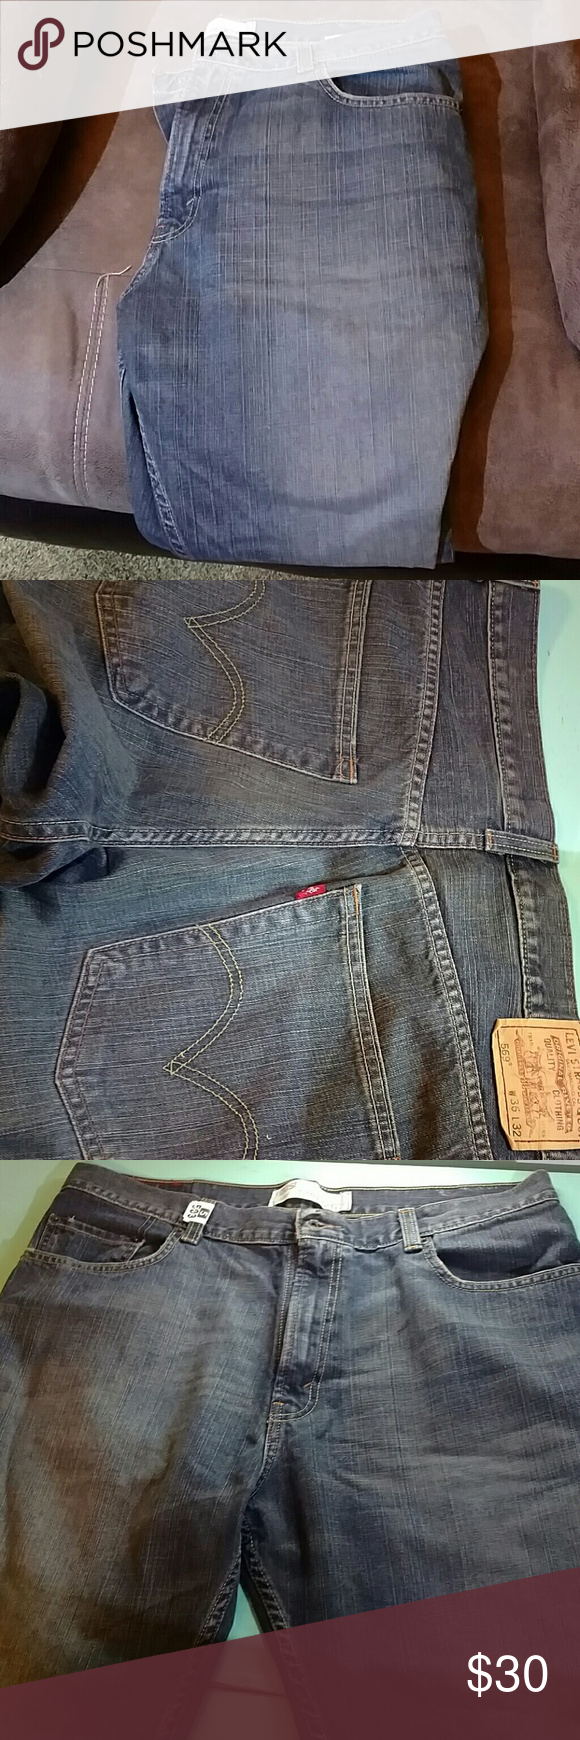 Levi jeans W 36 L 32 bought but could not wear. Style 569 loose straight no holes or loose strands Levi's Jeans